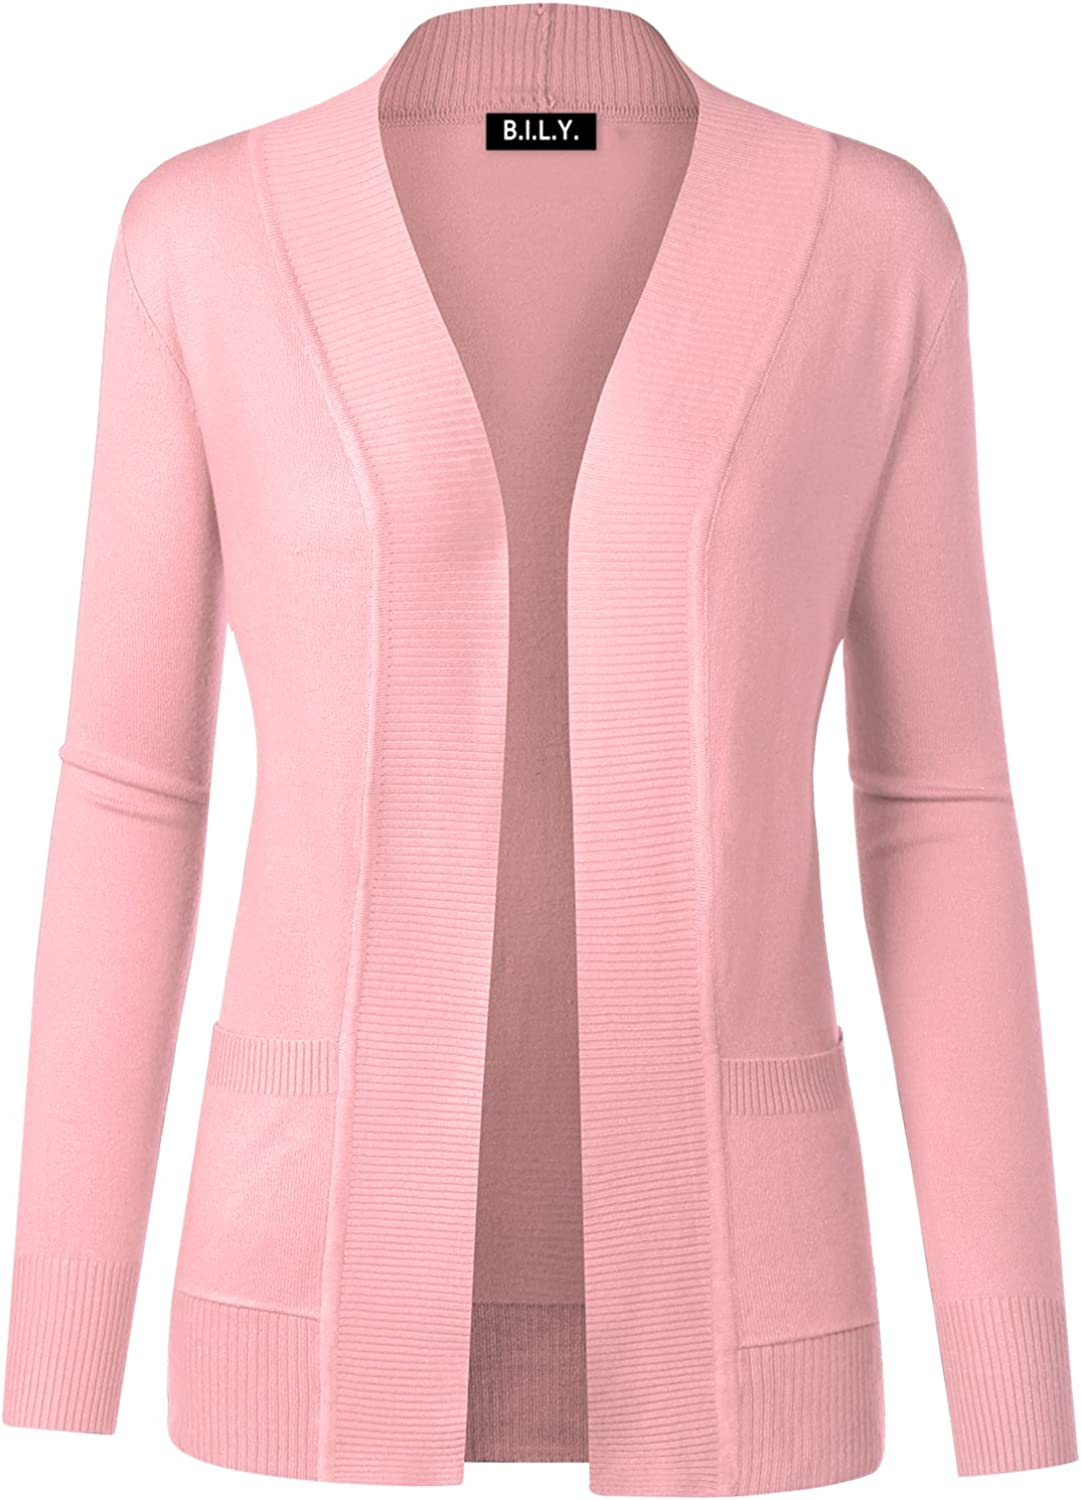 BH B.I.L.Y USA Women's Open Front Long Sleeve Classic Knit Cardigan Baby Pink Medium